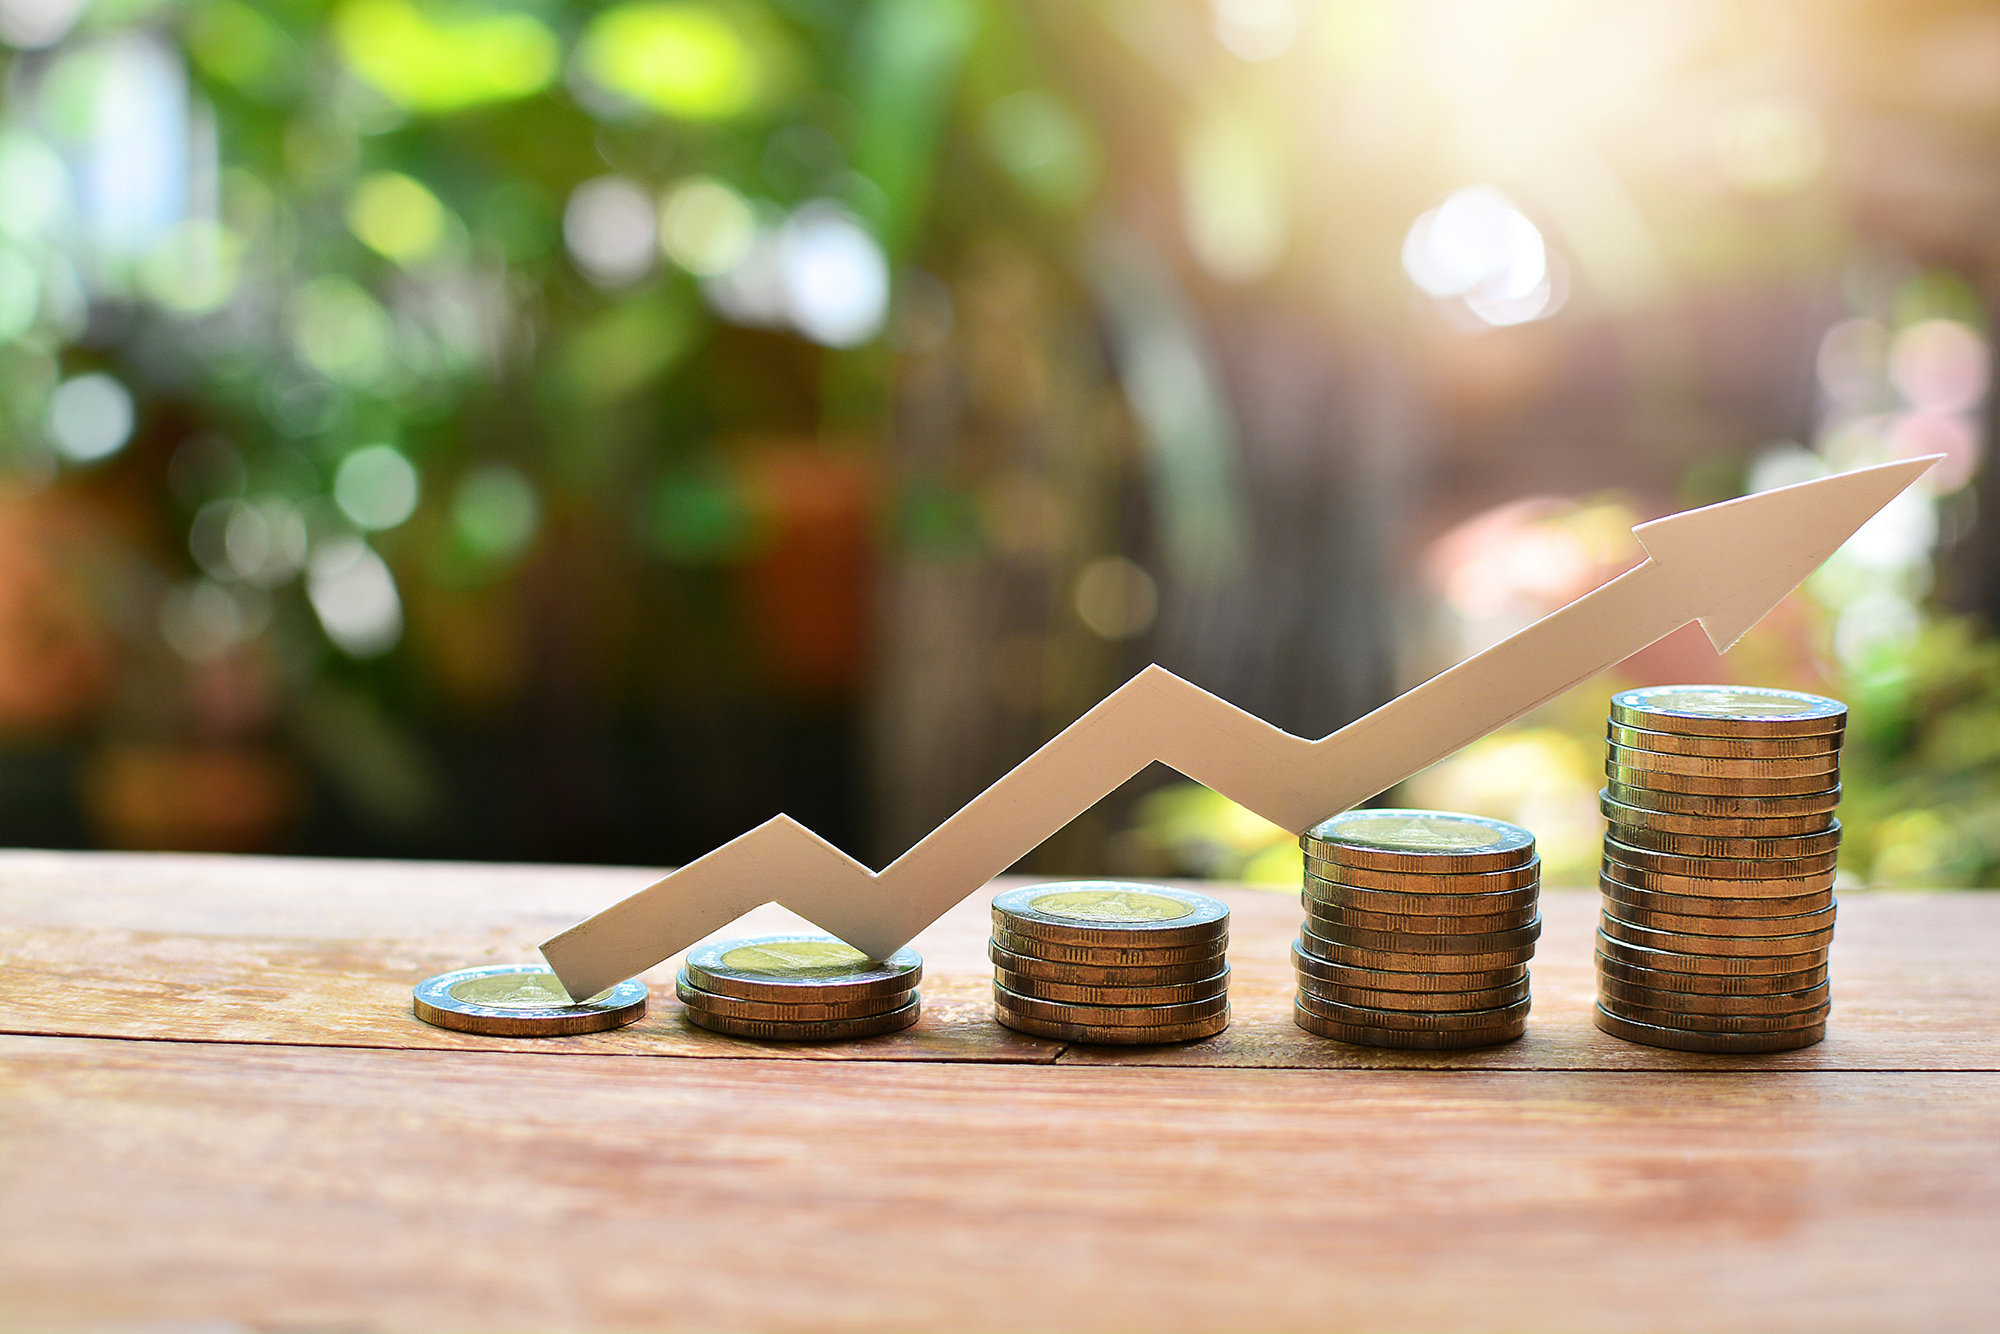 Investment growth concept. (Image: Shutterstock)